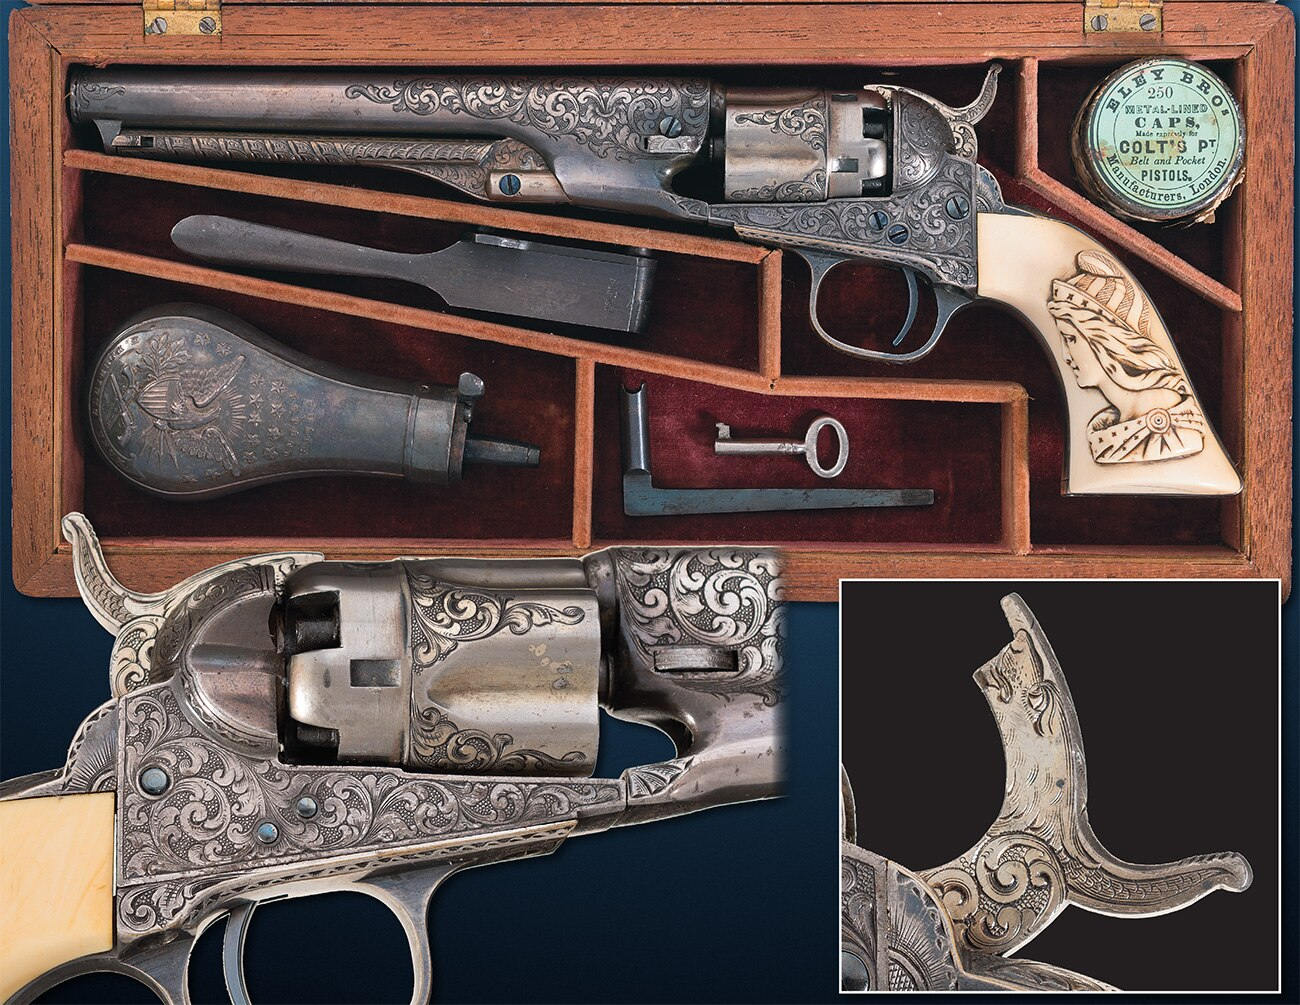 This .36 caliber Colt Model 1862 Police was extensively adorned in Germanic scrollwork and a Liberty motif by New York City-based master engraver Louis D. Nimschke, and was probably meant for an officer in the Civil War. Estimated Price: $45,000 - $70,000